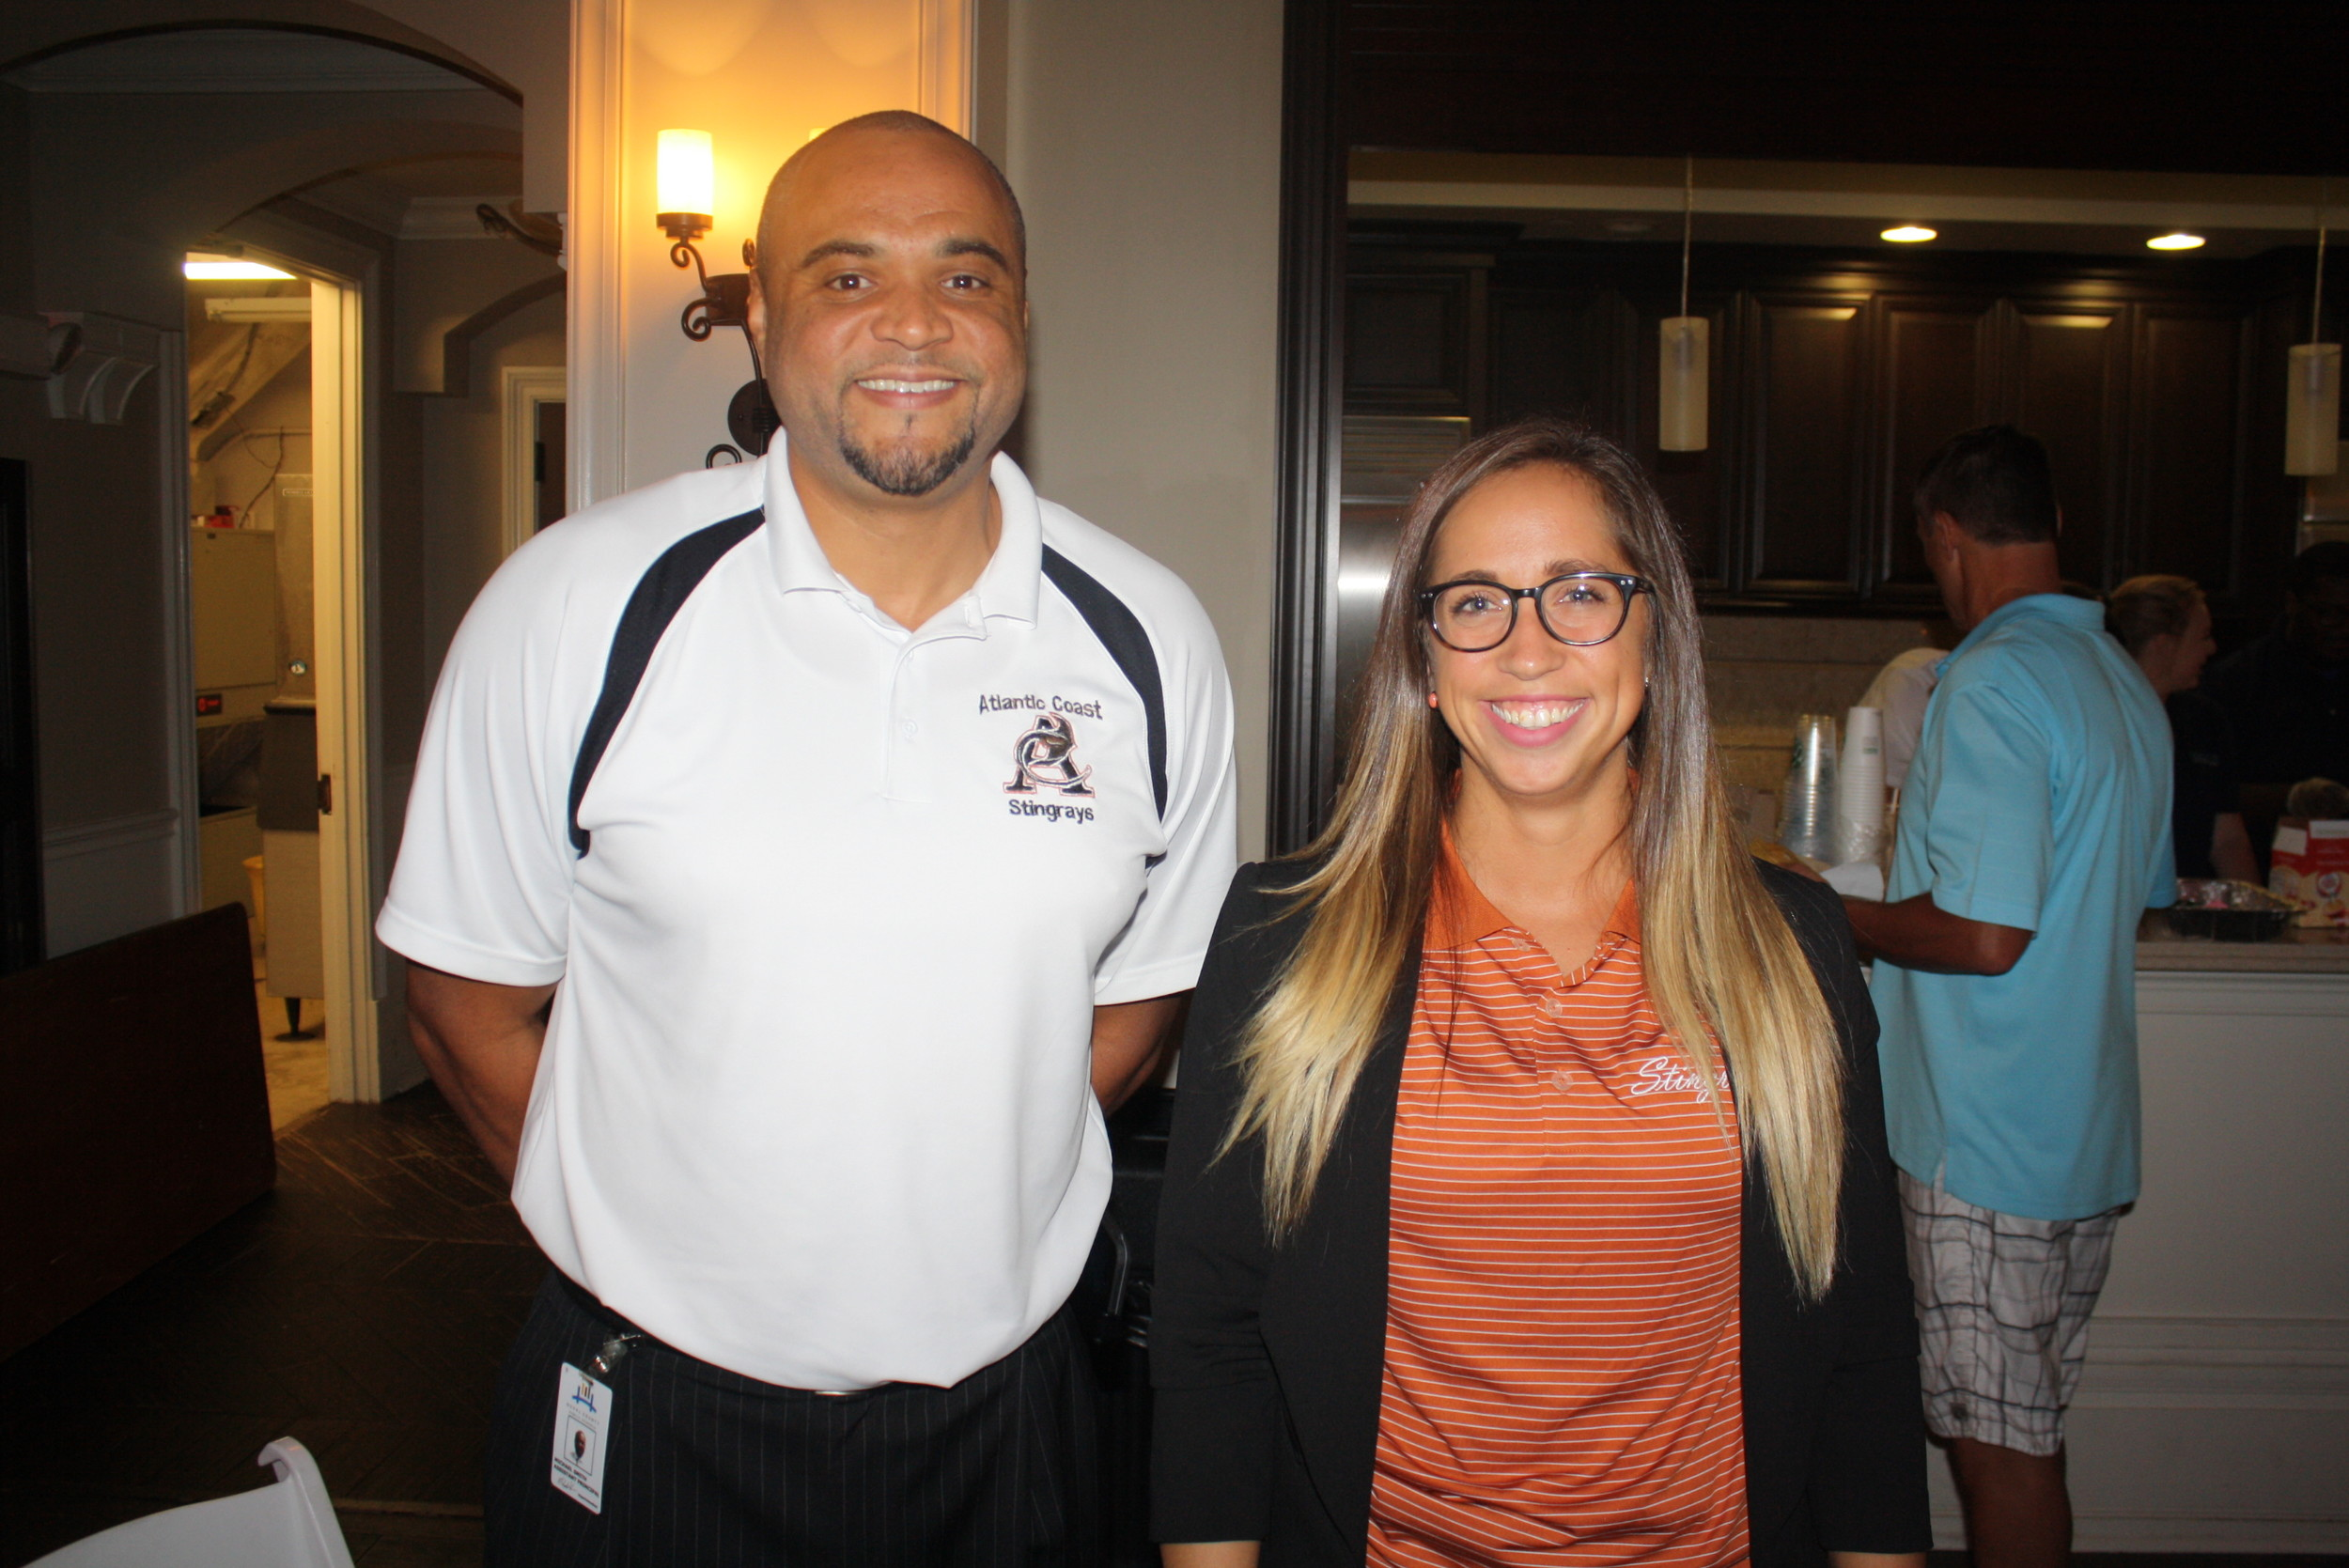 Atlantic Coast High School Assistant Principals Dr. Michael Smith and Emily McMahon